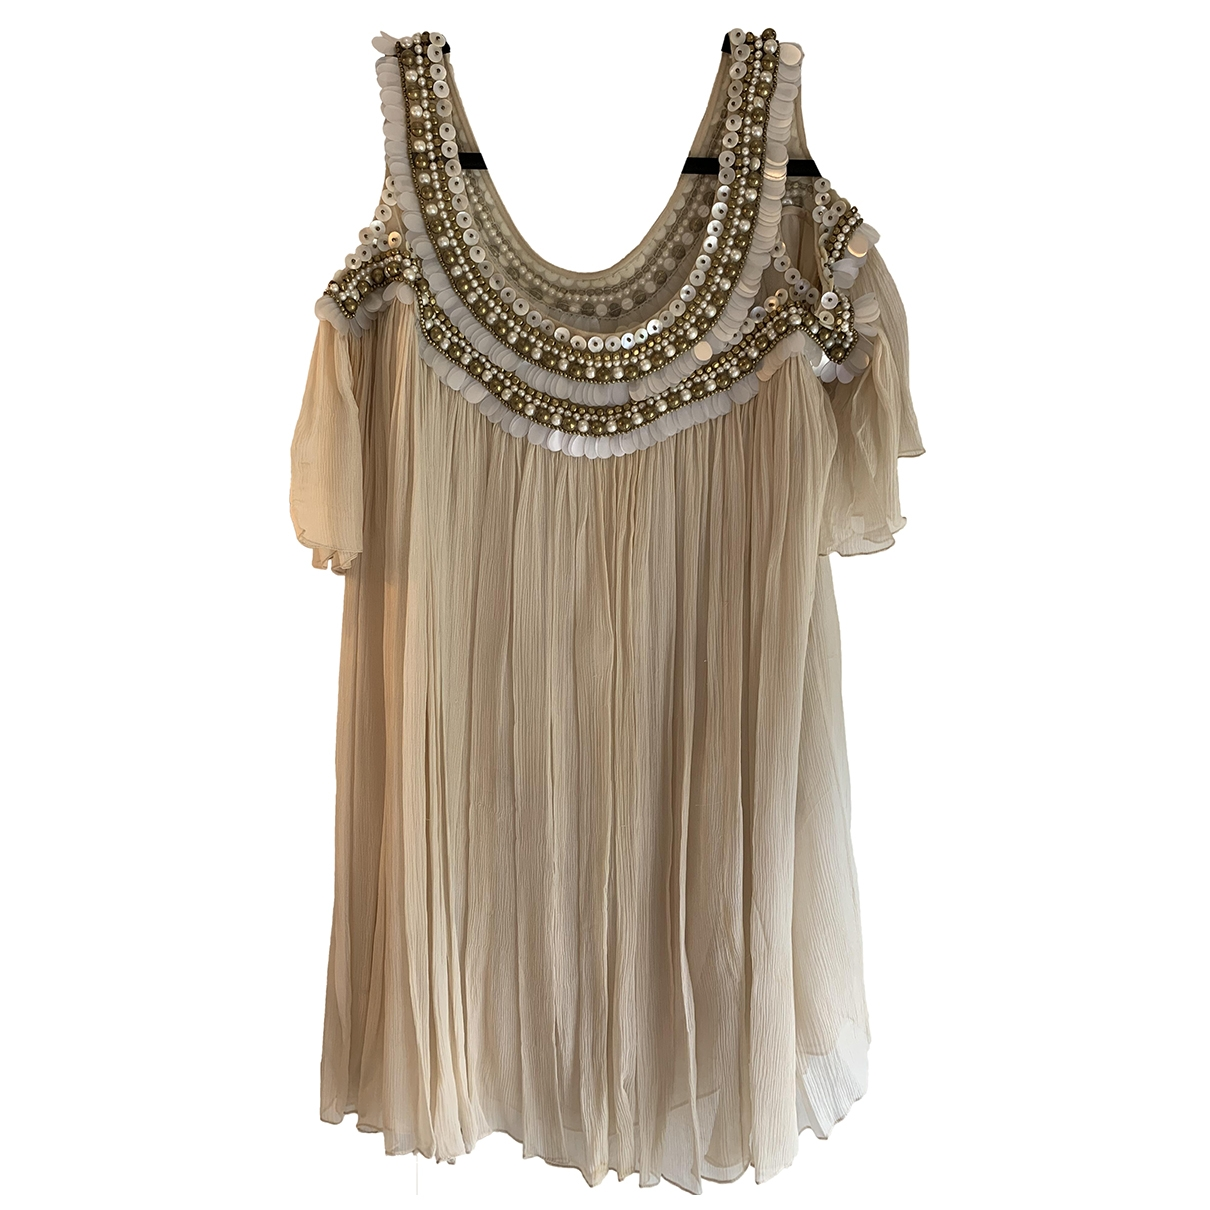 Temperley London \N Beige Silk dress for Women 14 UK